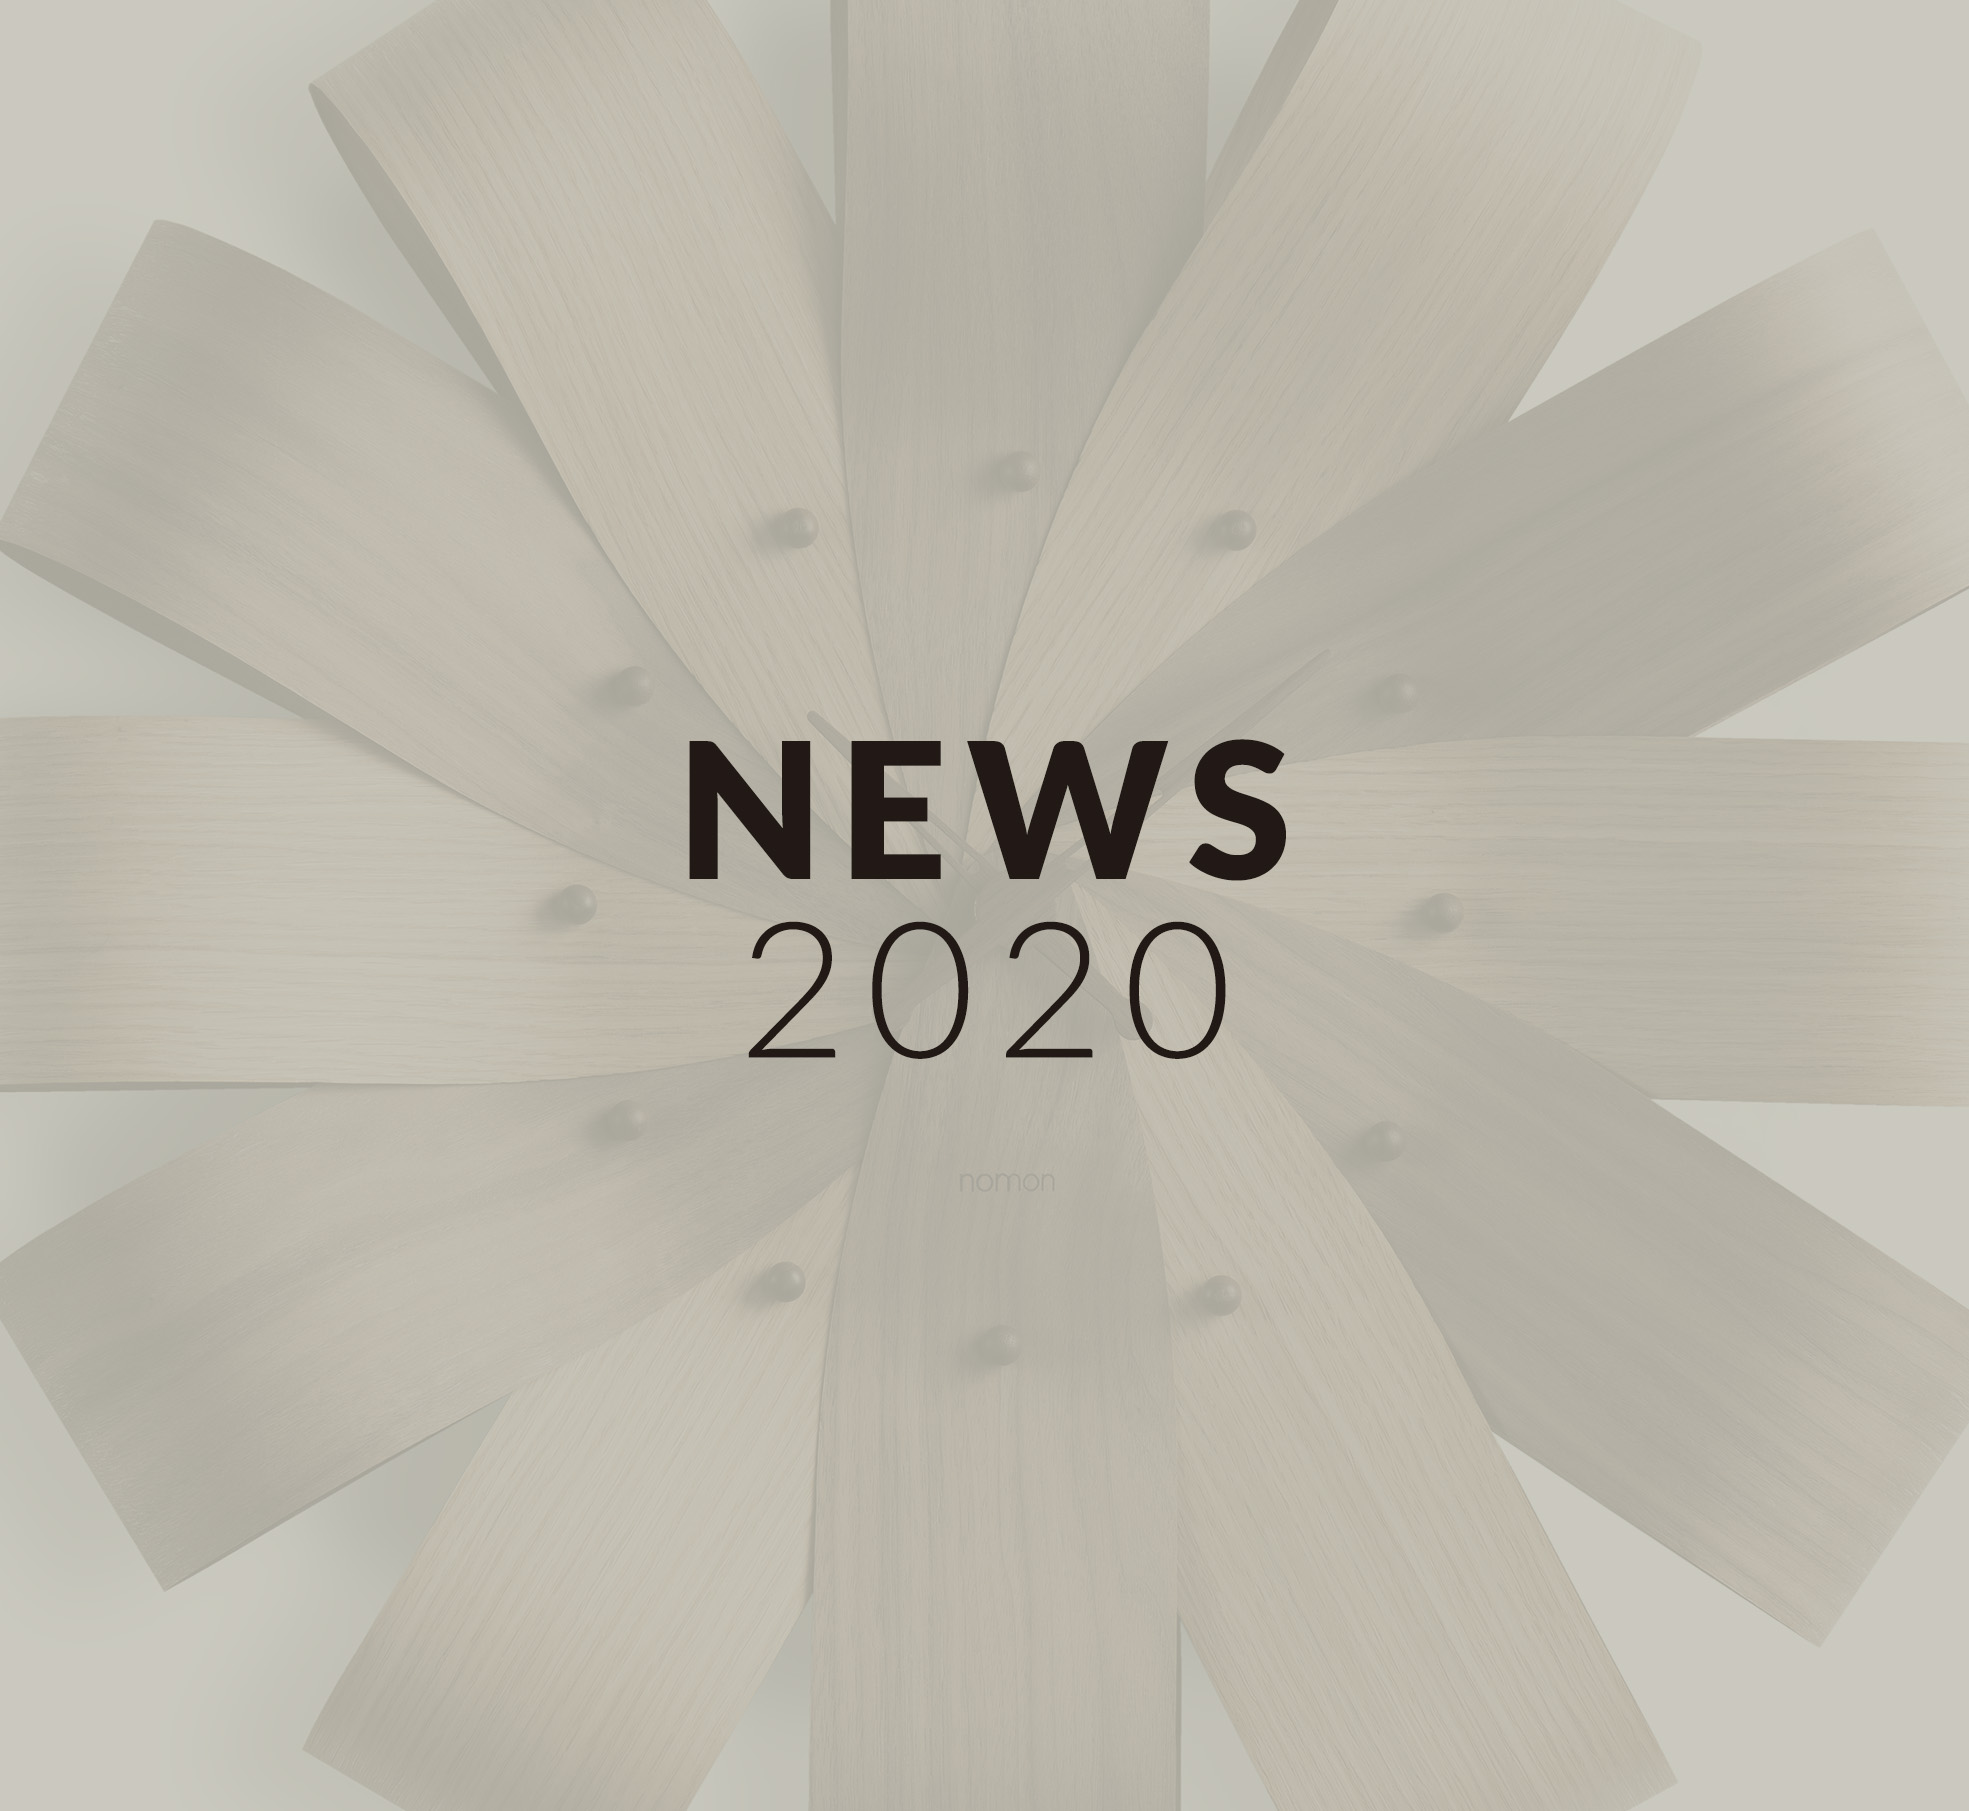 news-nomon-clocks-2020